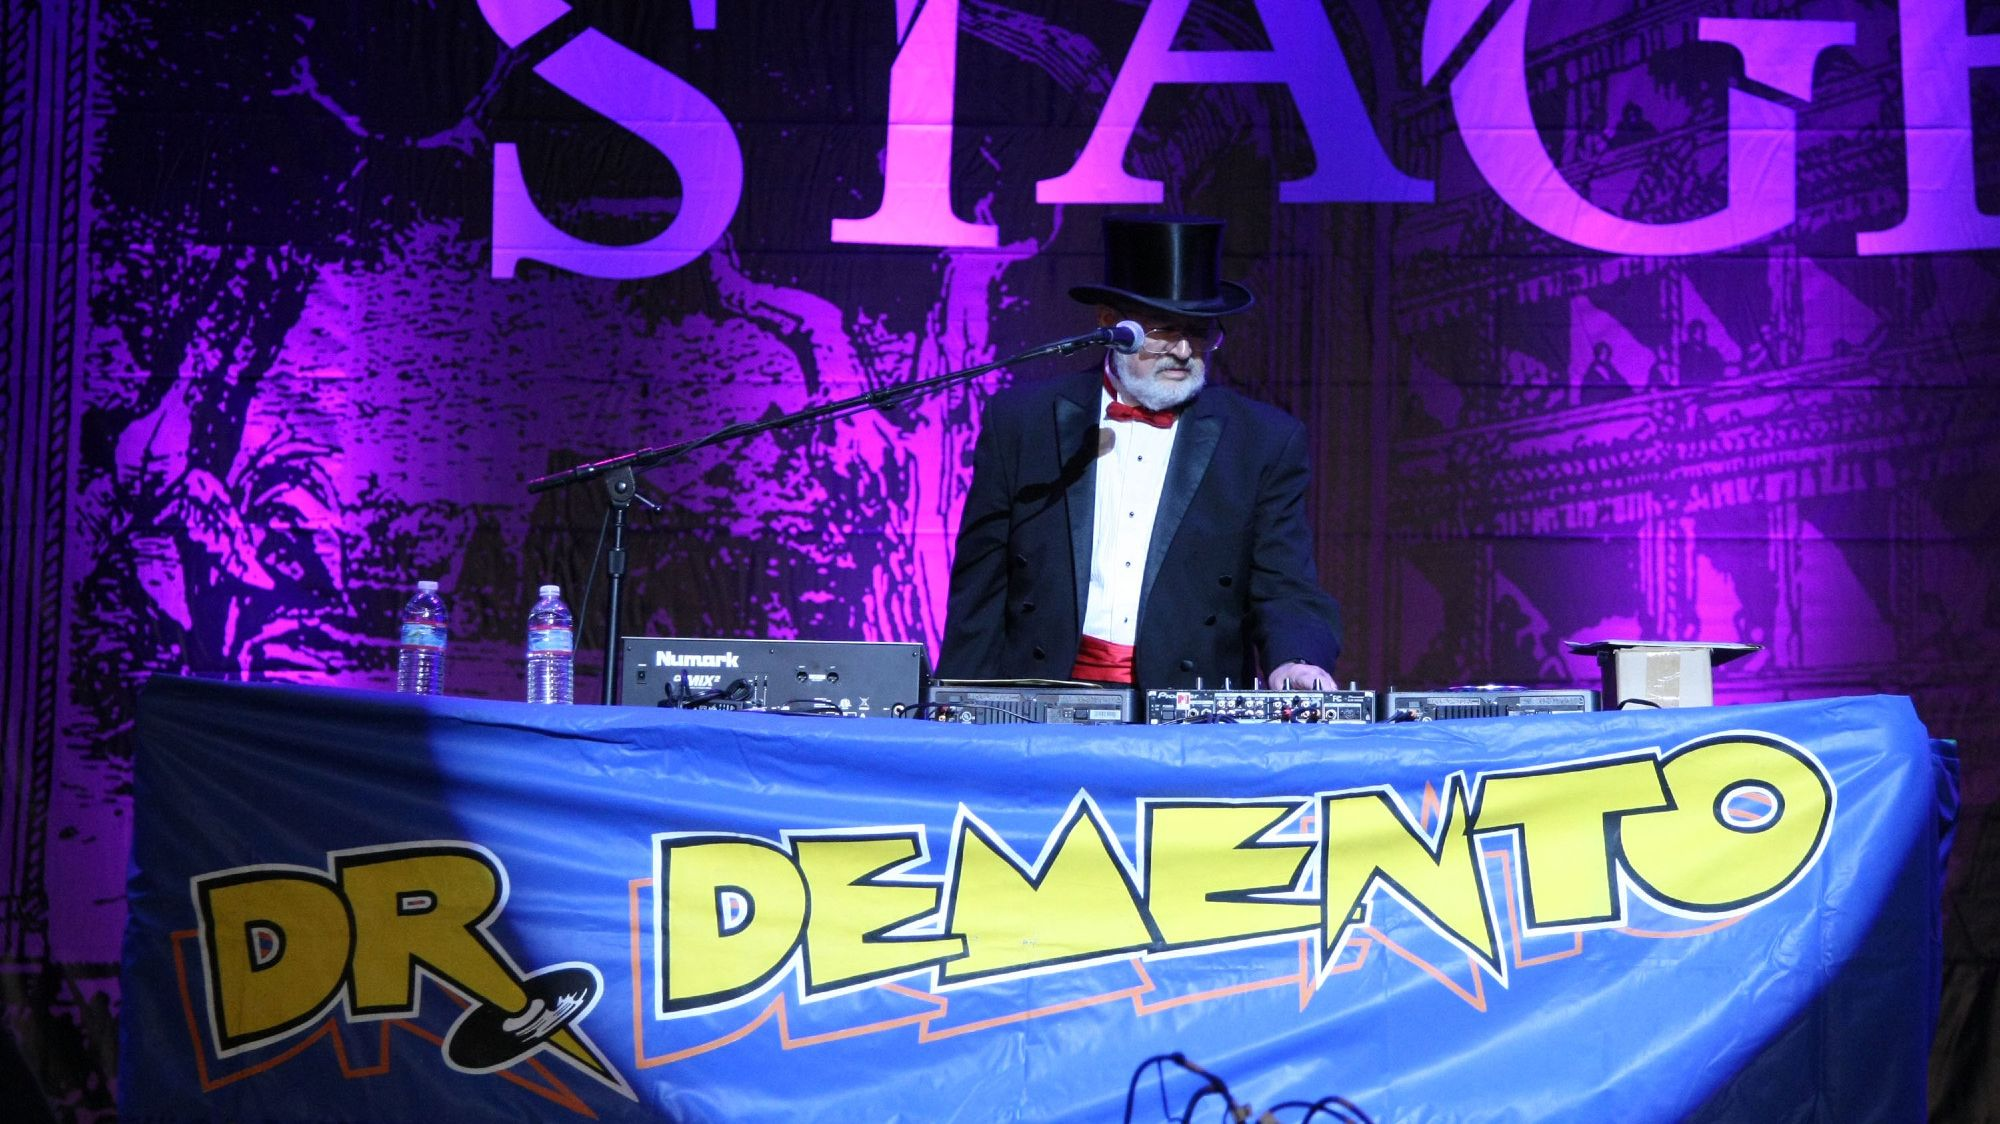 When Dr. Demento Ruled the Airwaves